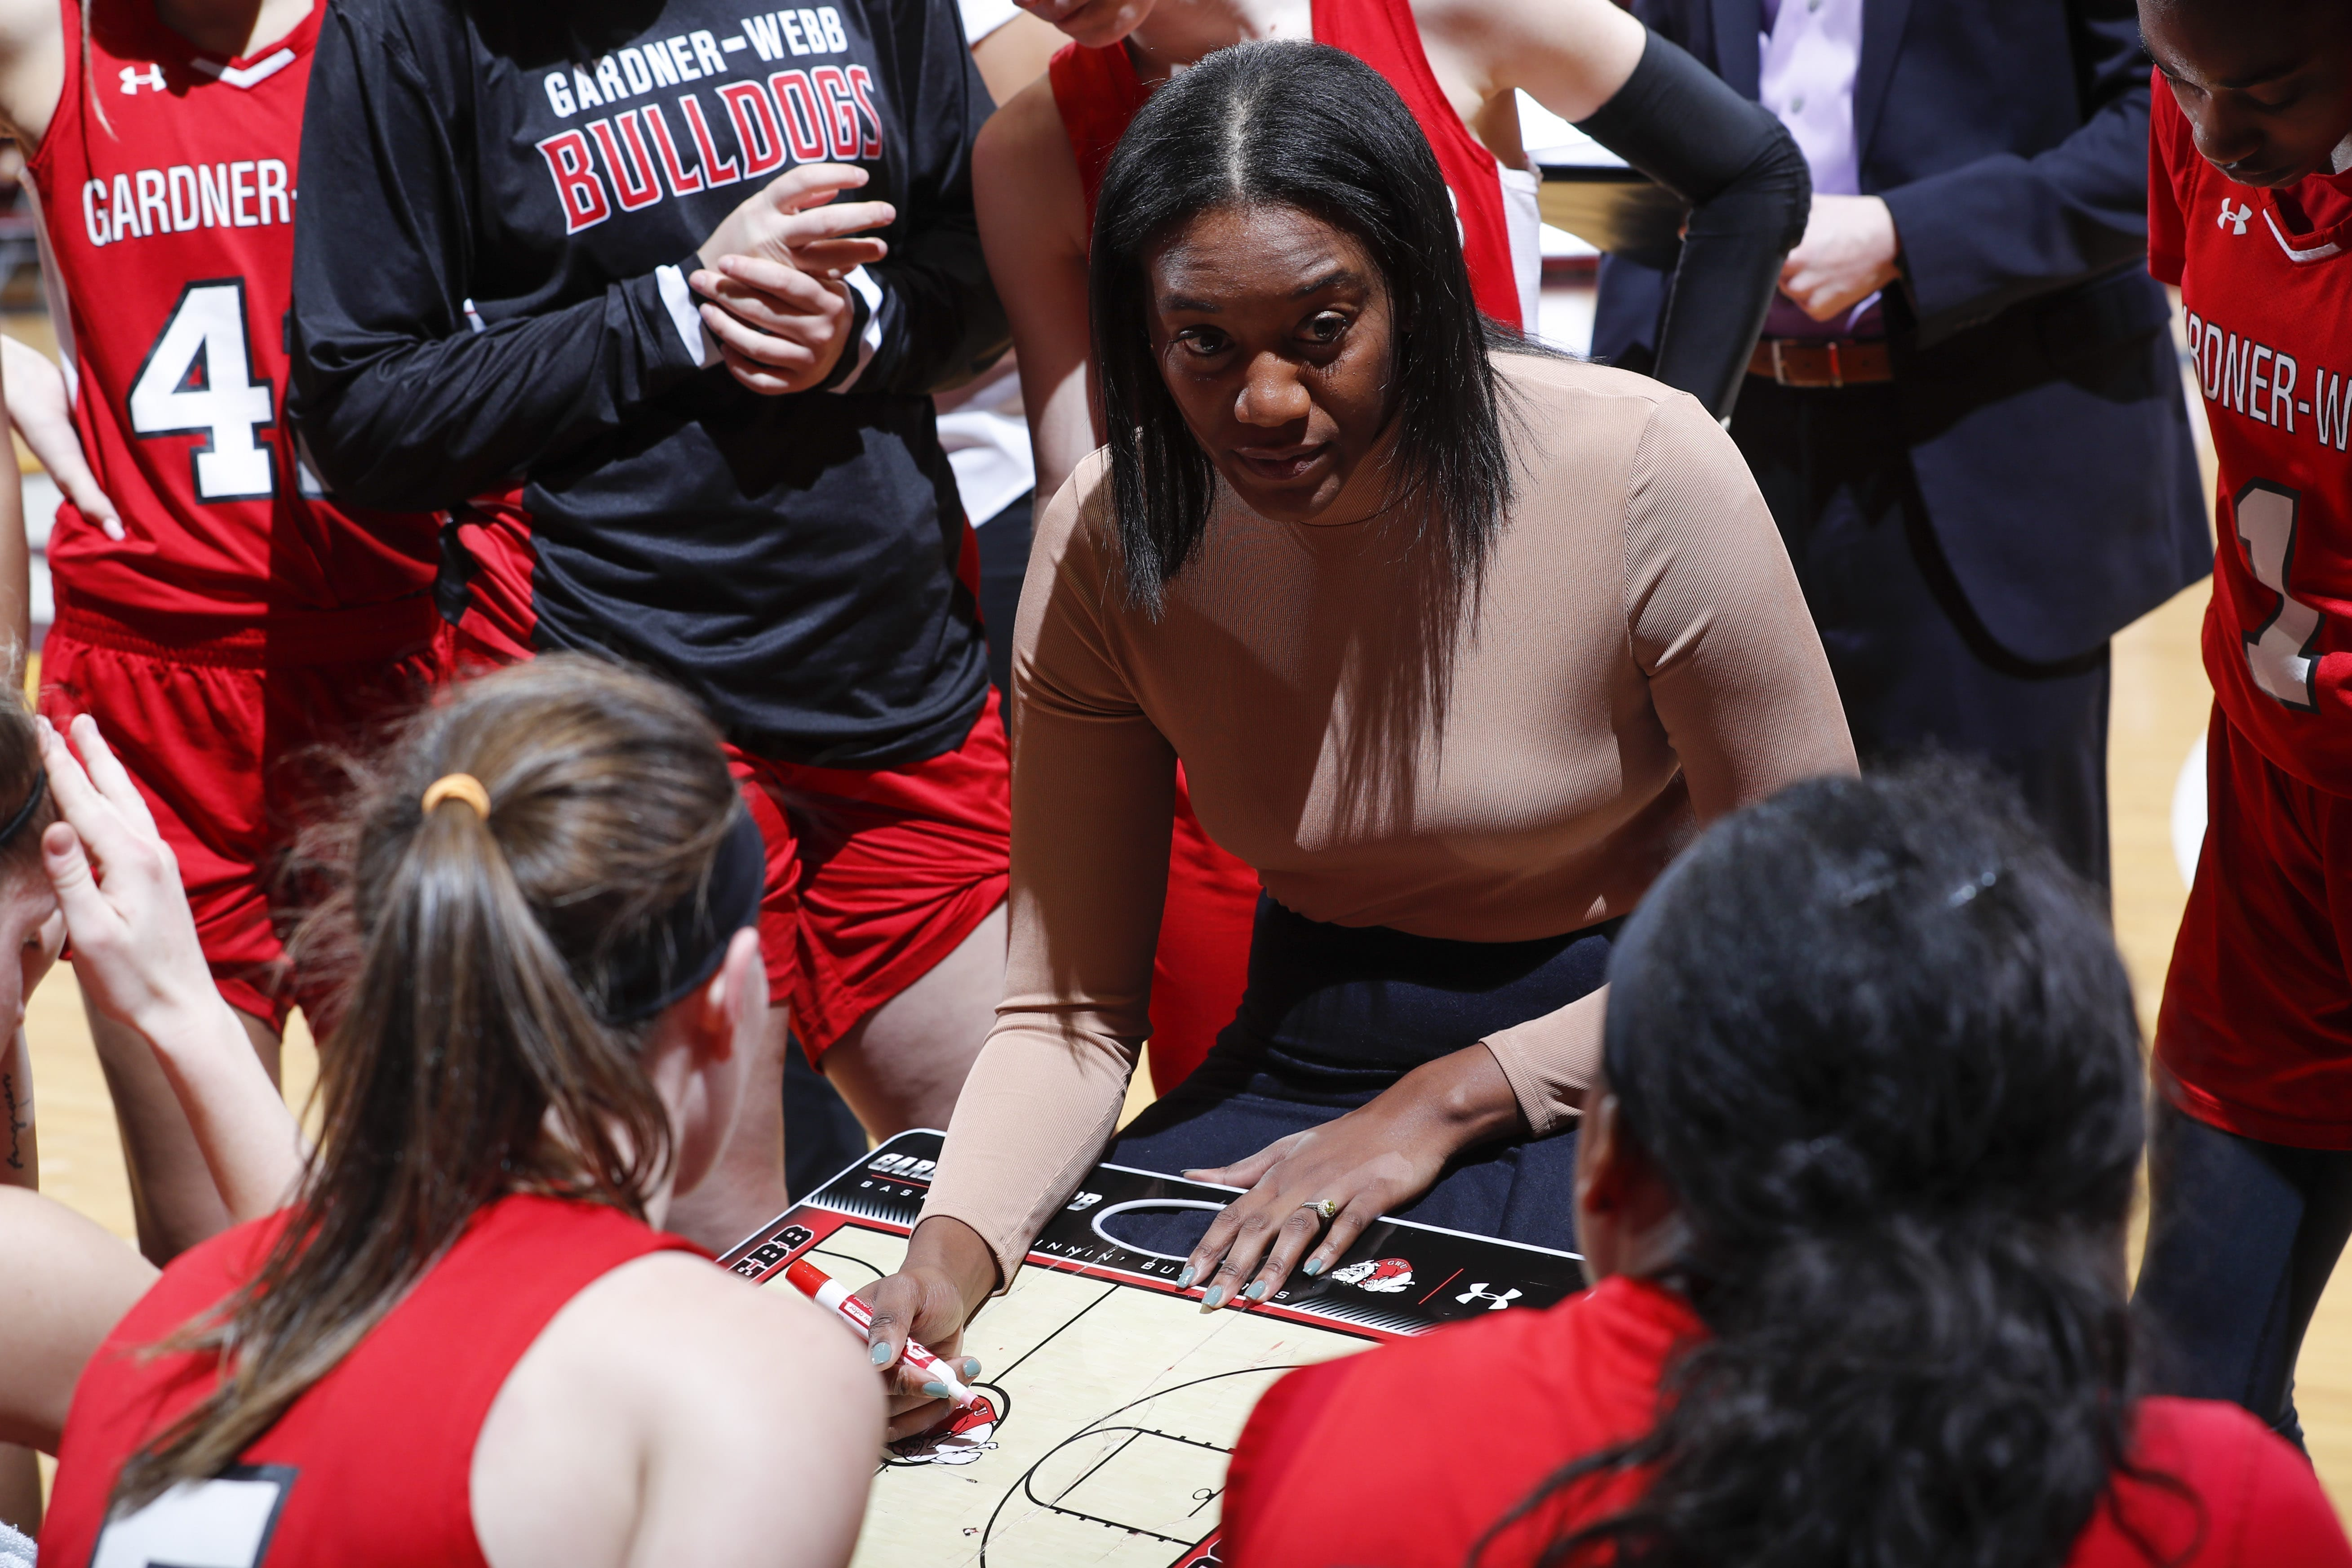 Gardner-Webb 2019-20 in Review With Coach Simmons